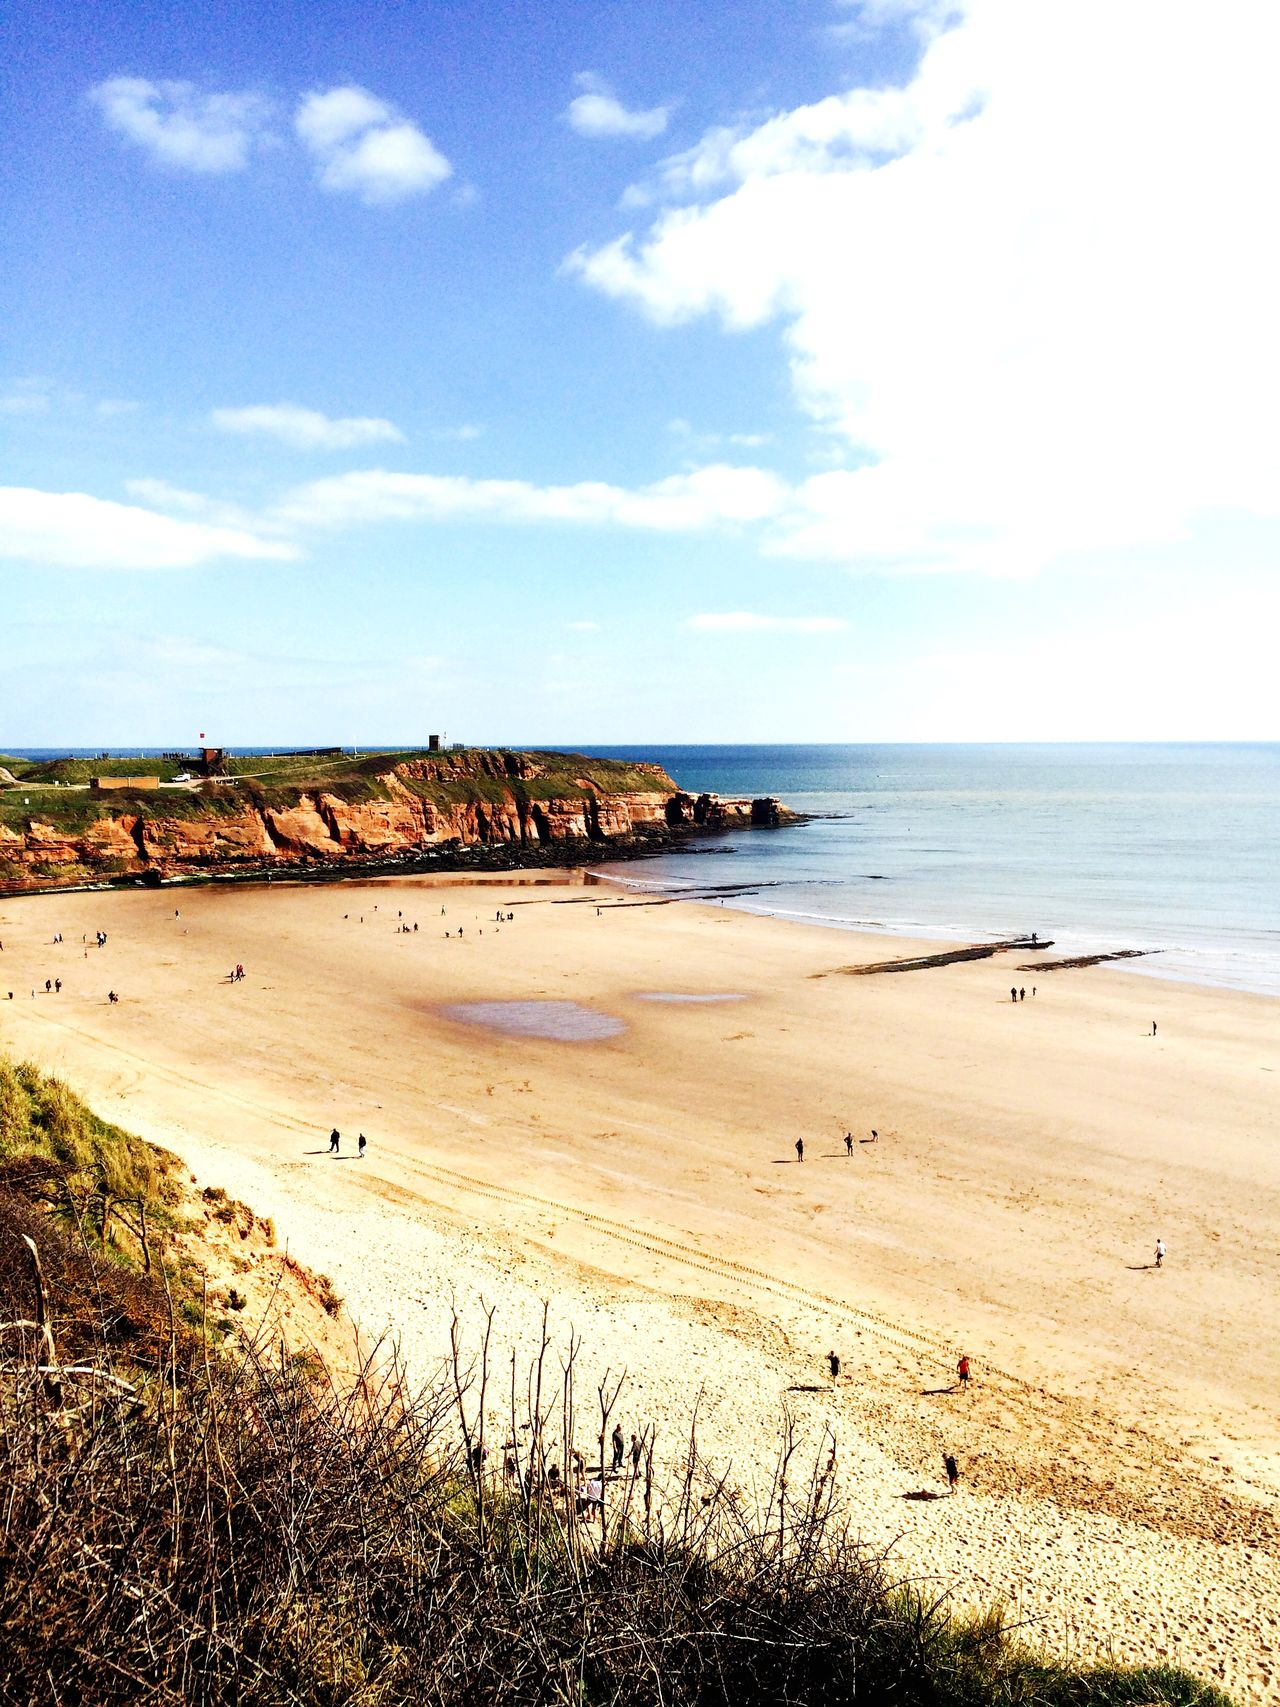 The Amazing Devon Cliffs sandy bay beach